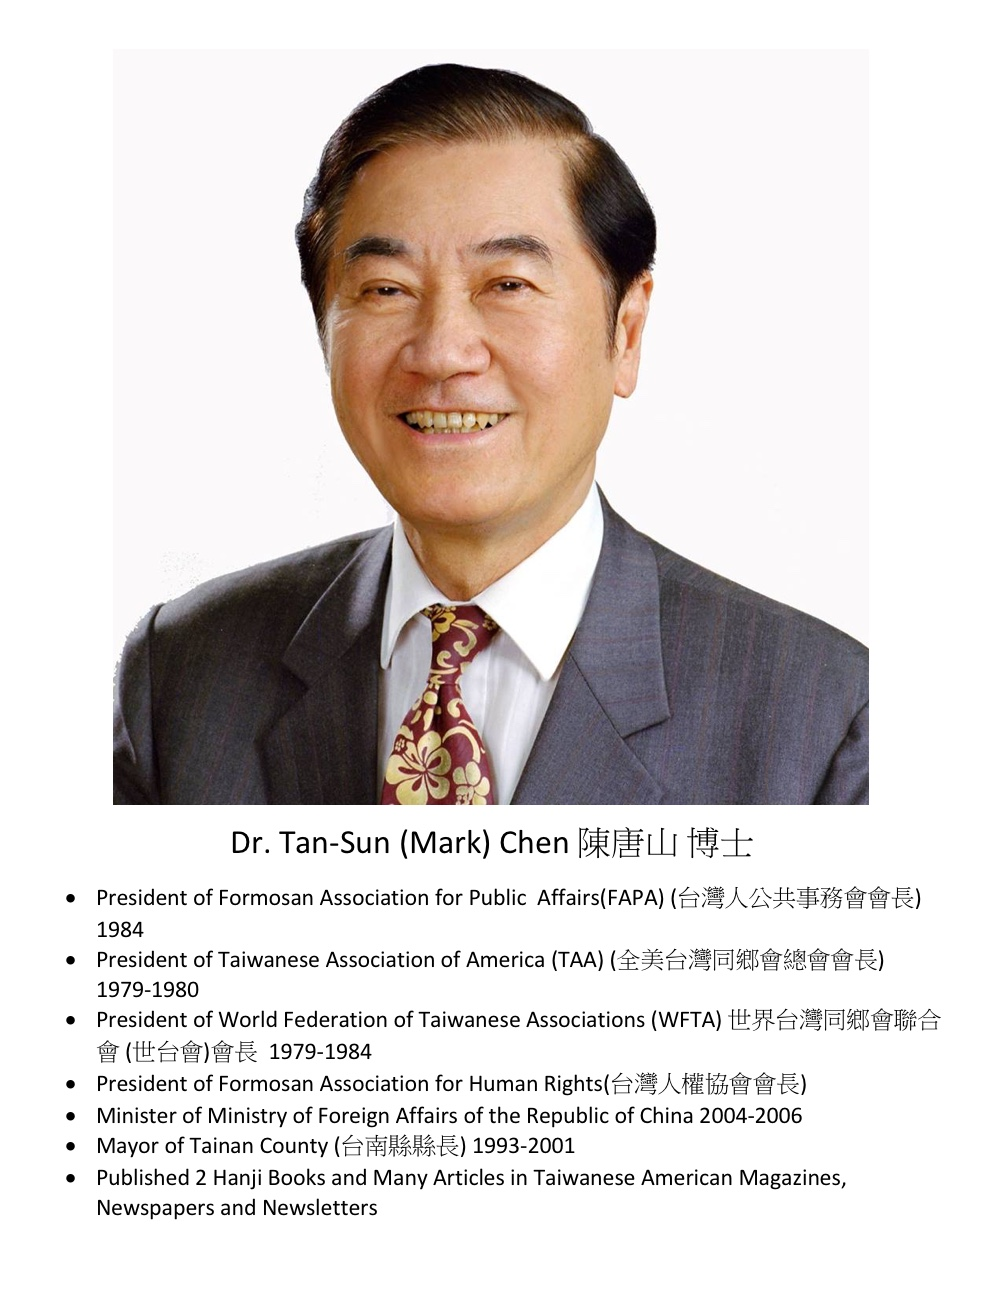 204. Dr. Tan-Sun (Mark) Chen 陳唐山博士